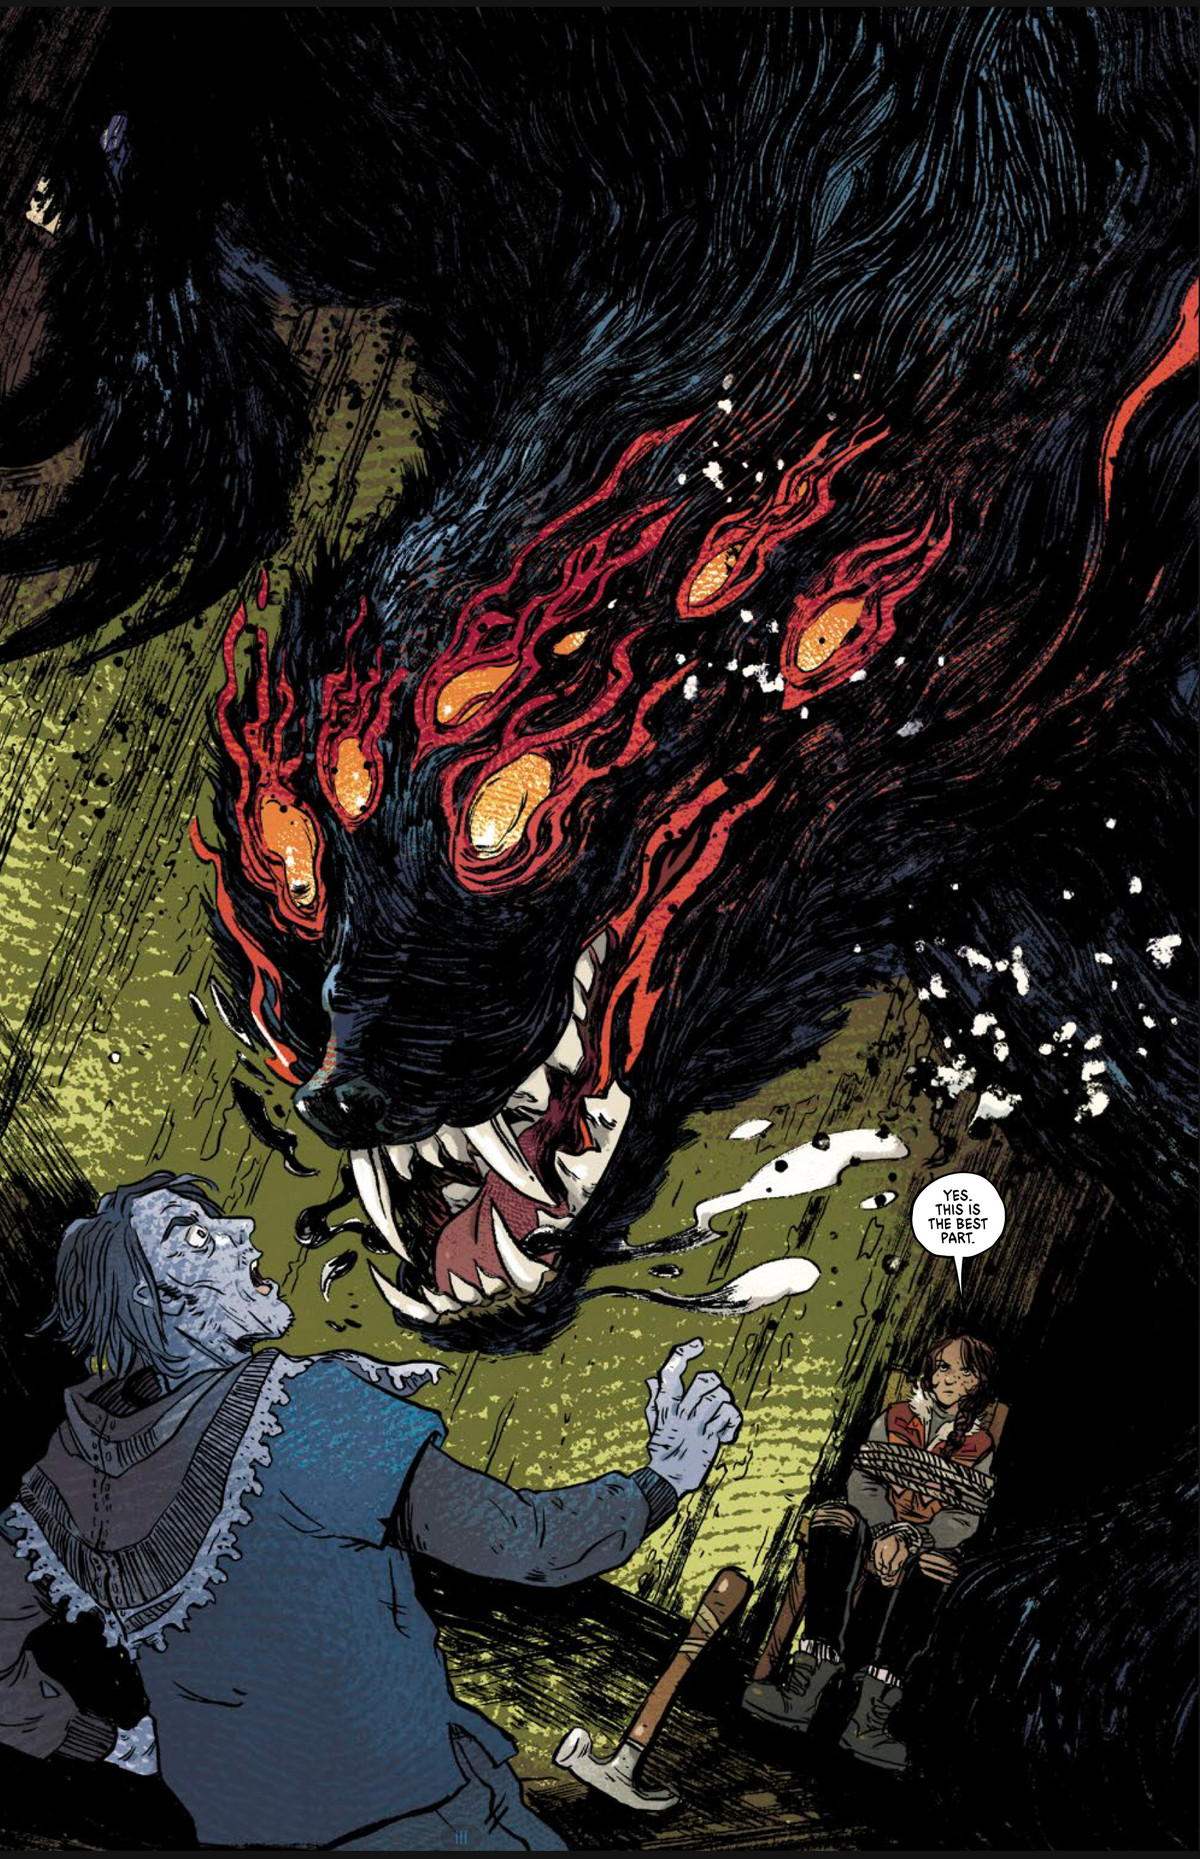 """A hairy, fanged shadow monster with at least six eyes leaps upon a haggard man, as a girl tied to a chair says """"Yes. This is the best part."""" in I Walk With Monsters, Vault Comics (2020)."""